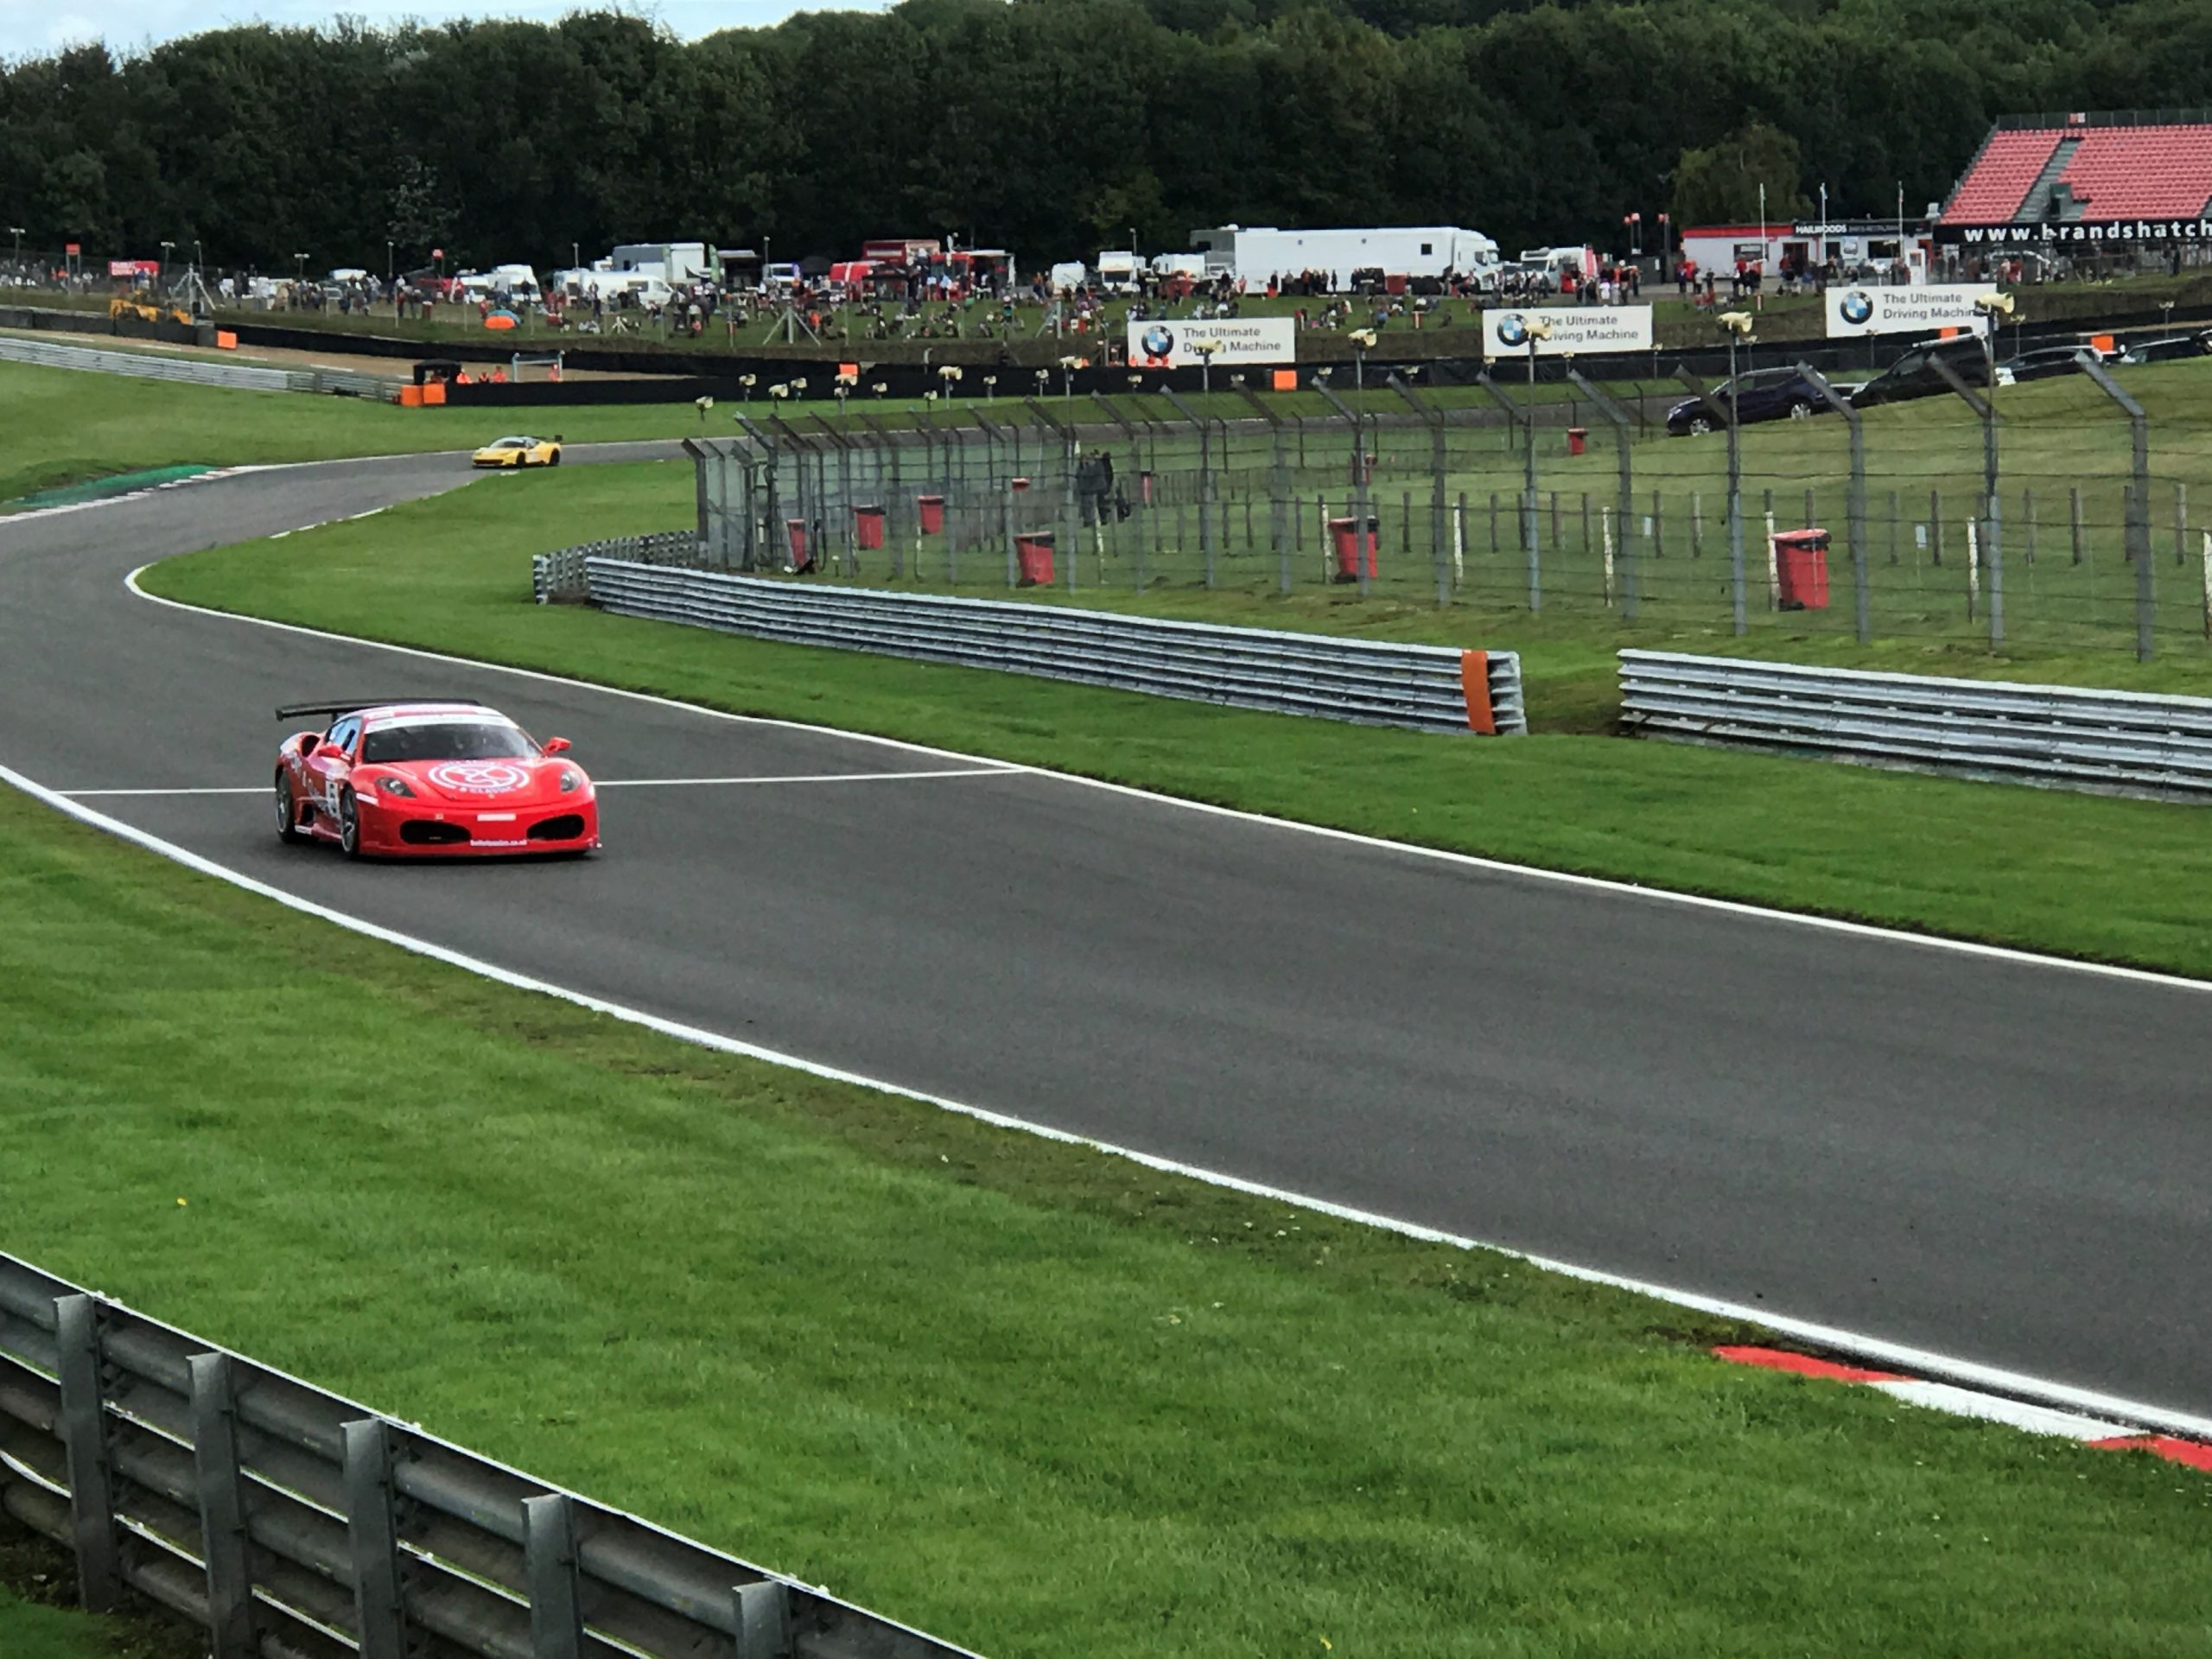 Festival Italia at Brands Hatch